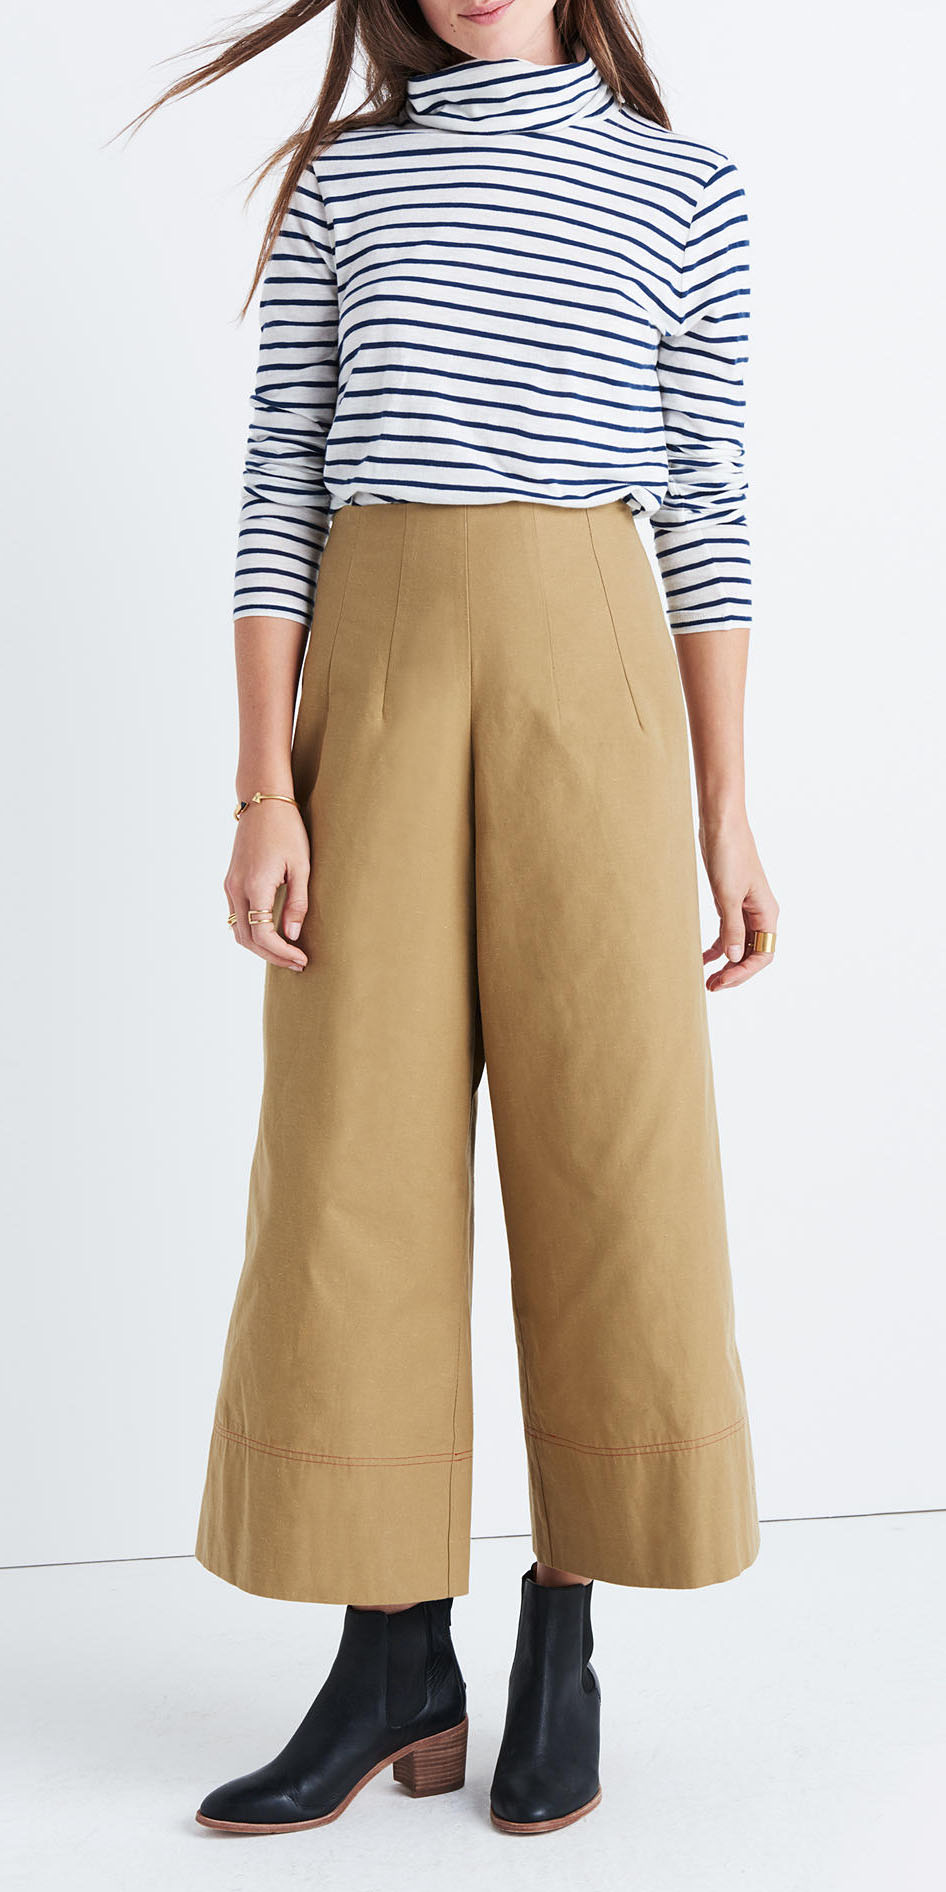 tan-culottes-pants-black-tee-stripe-turtleneck-black-shoe-booties-fall-winter-hairr-weekend.jpg